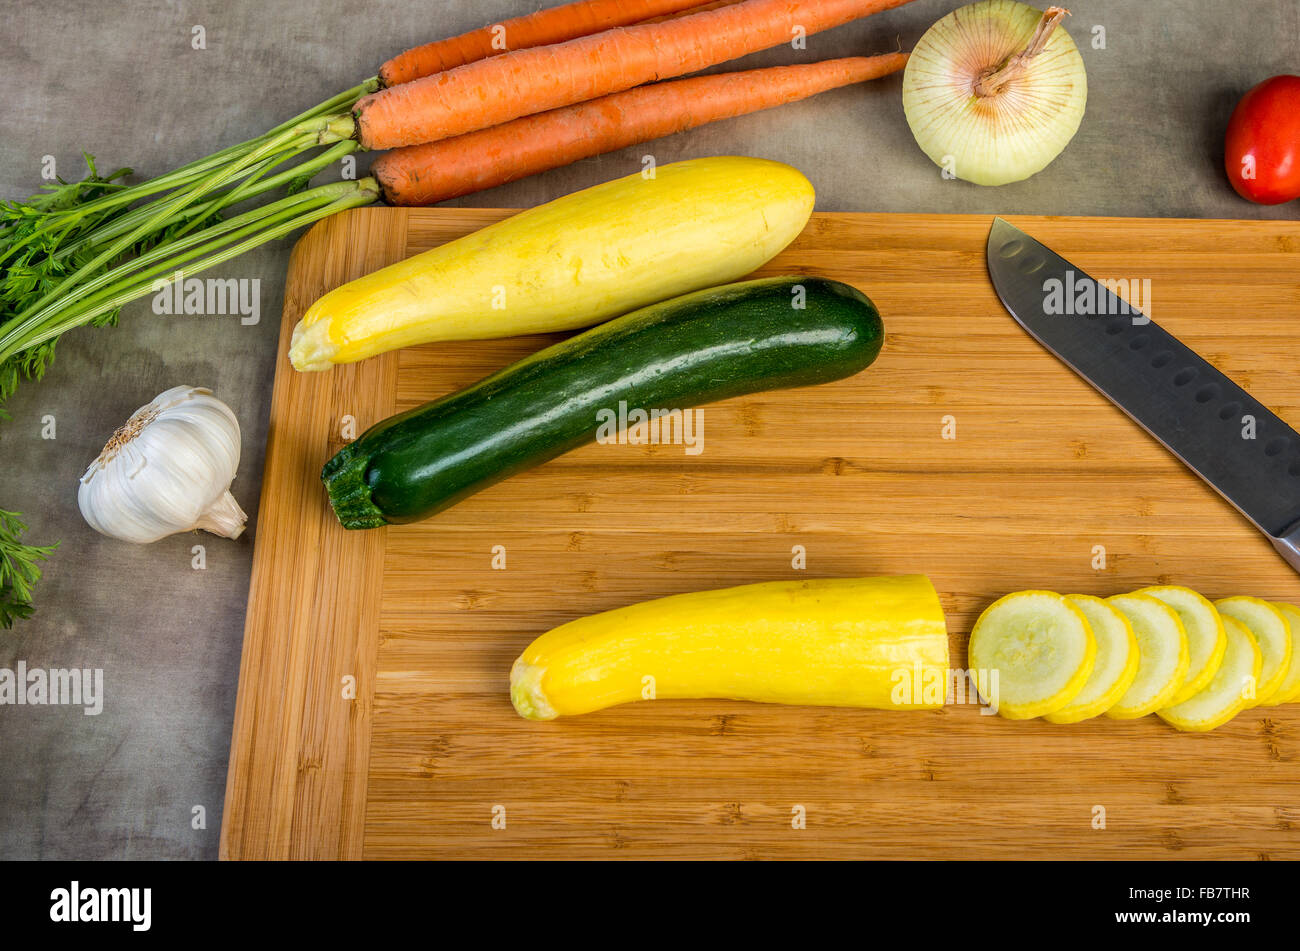 Wooden cutting board with vegetables - Stock Image